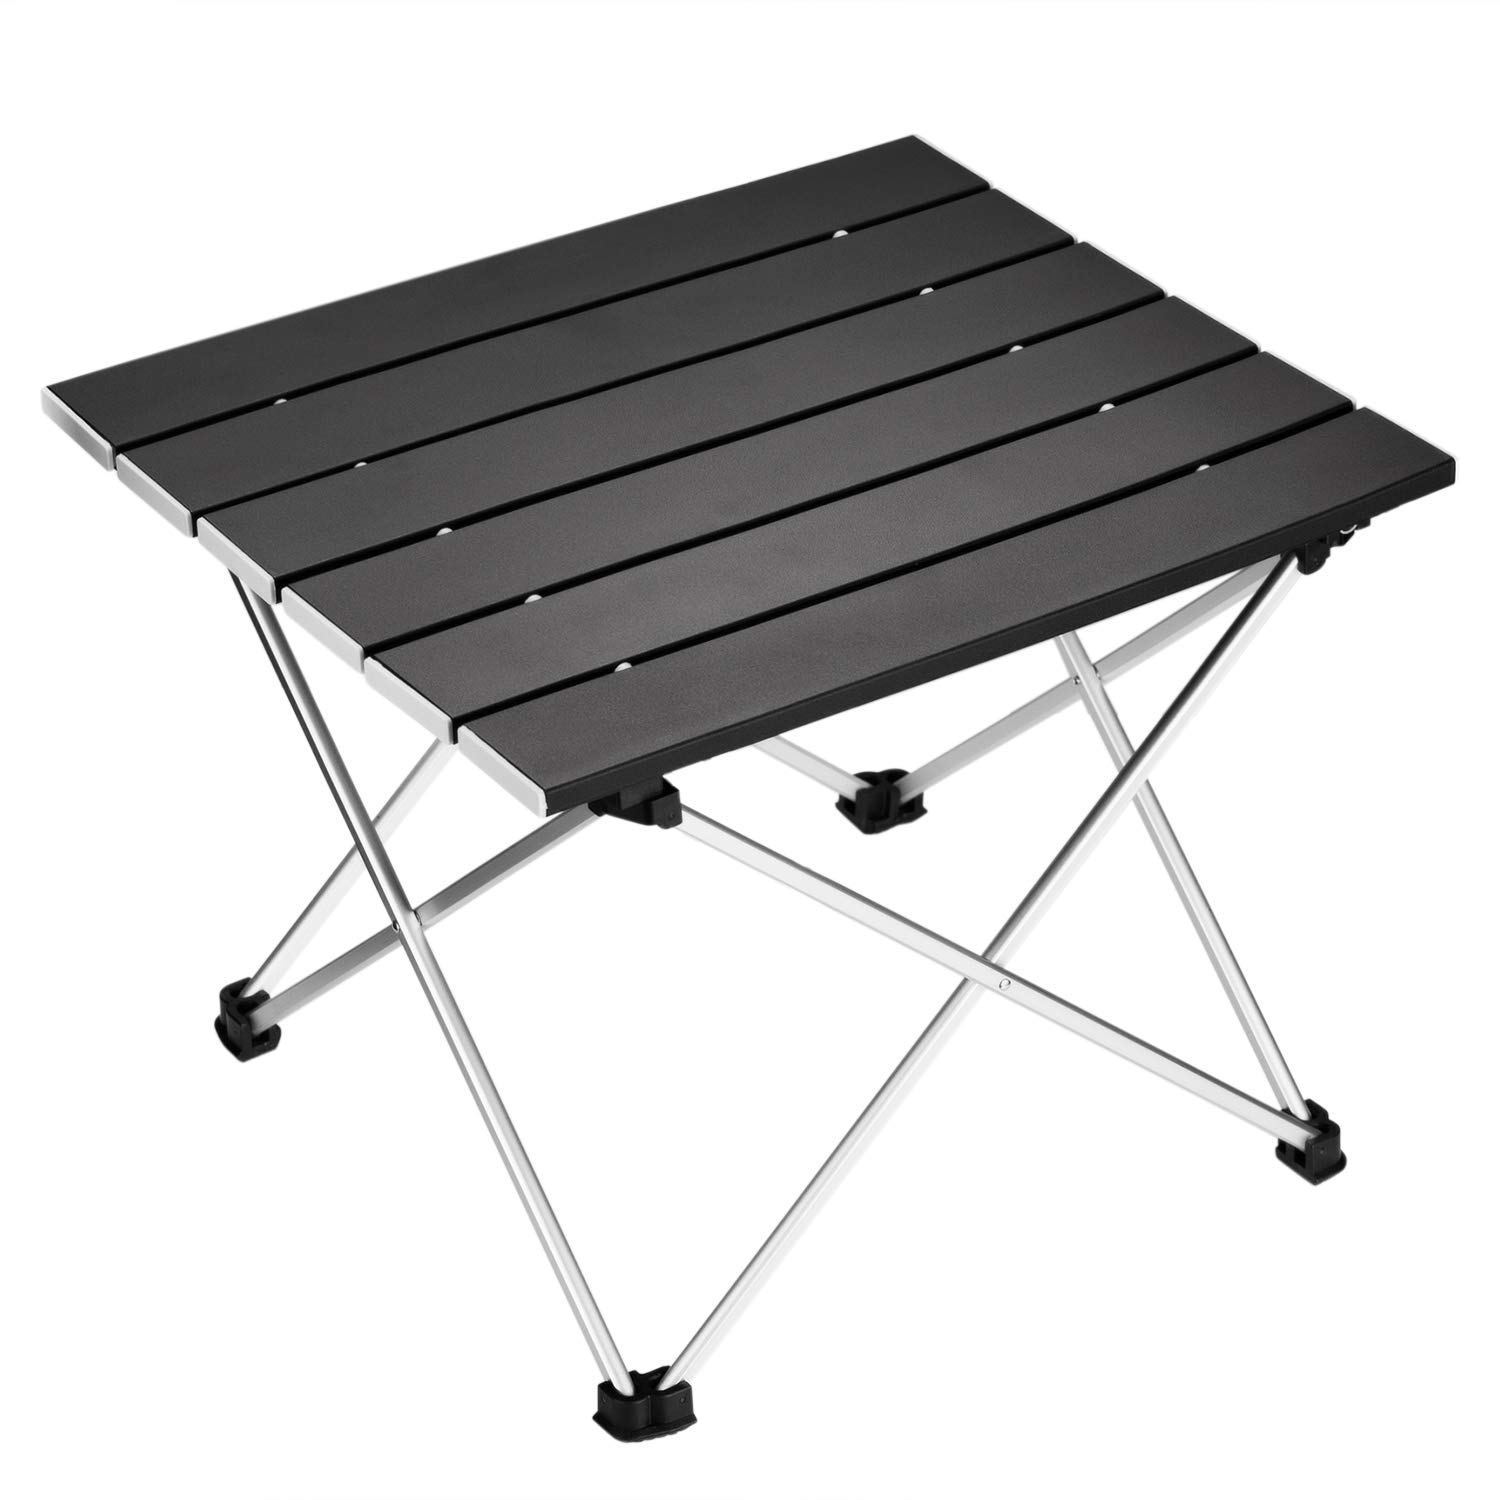 Ledeak Portable Camping Table, Small Ultralight Folding Table with Aluminum Table Top and Carry Bag, Easy to Carry, Prefect for Outdoor, Picnic, BBQ, Cooking, Festival, Beach, Home Use by Ledeak